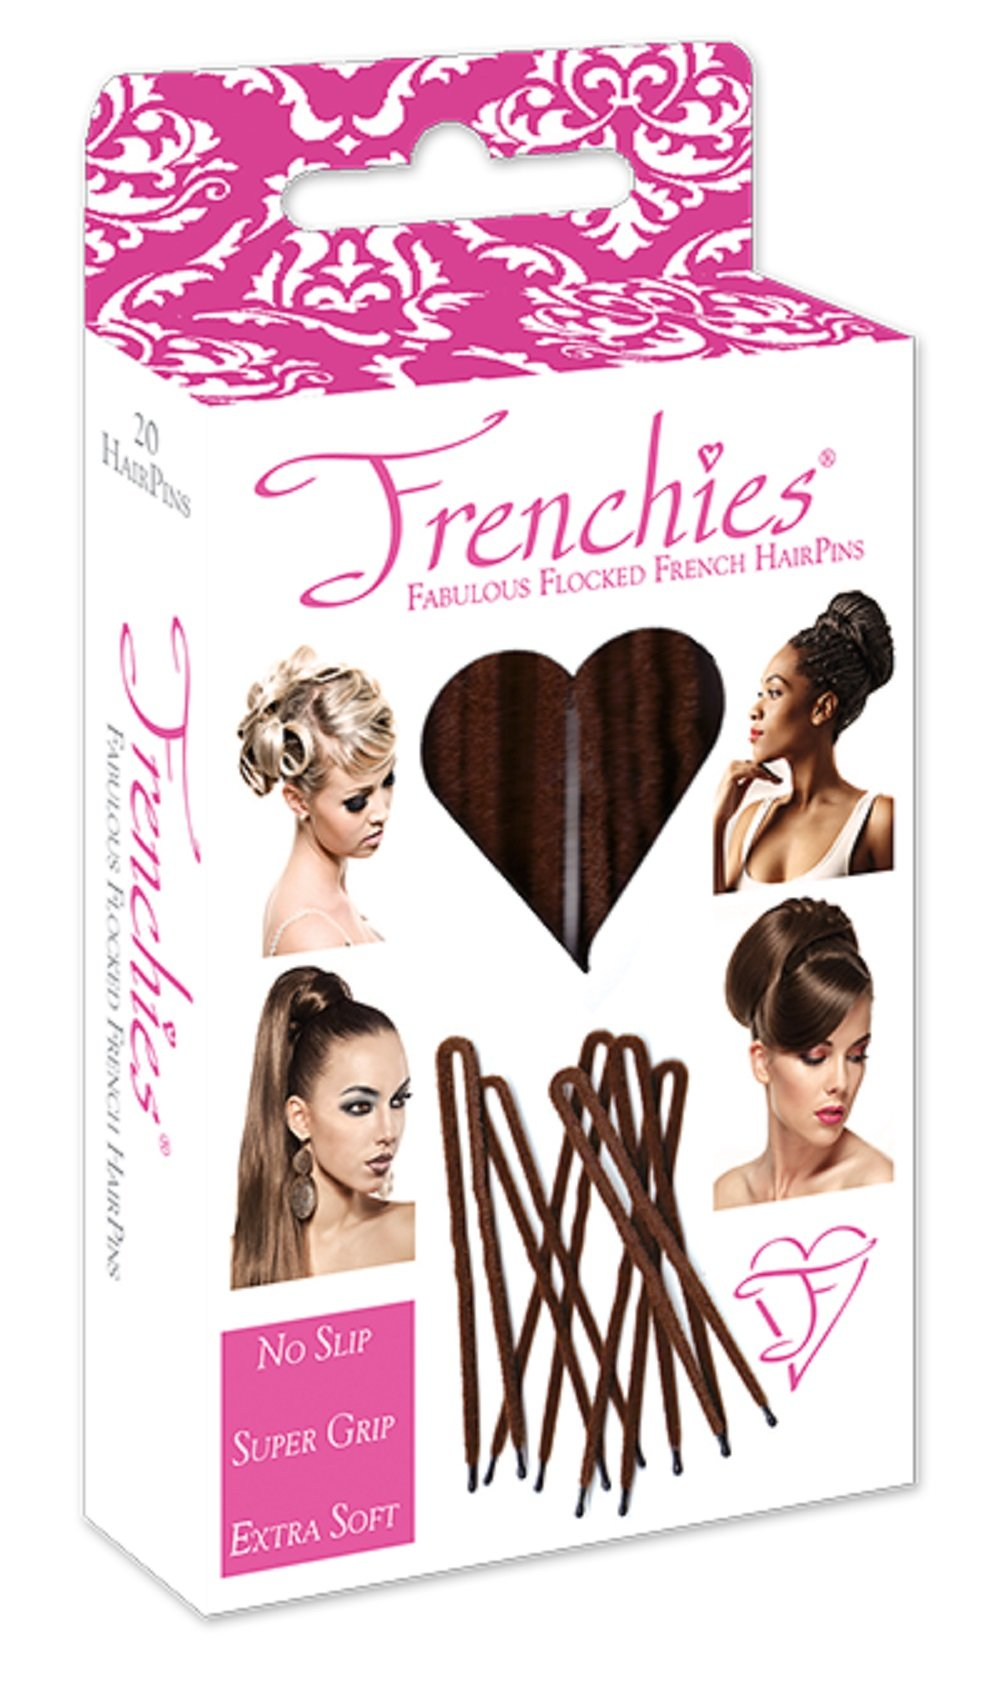 Frenchies Ultra Flocked Extra Soft French Twist Hair Pins: The French Hair Pins for Buns, Updo Hairstyles, Hair Extensions + Wigs - 20 Count Brown by Frenchies